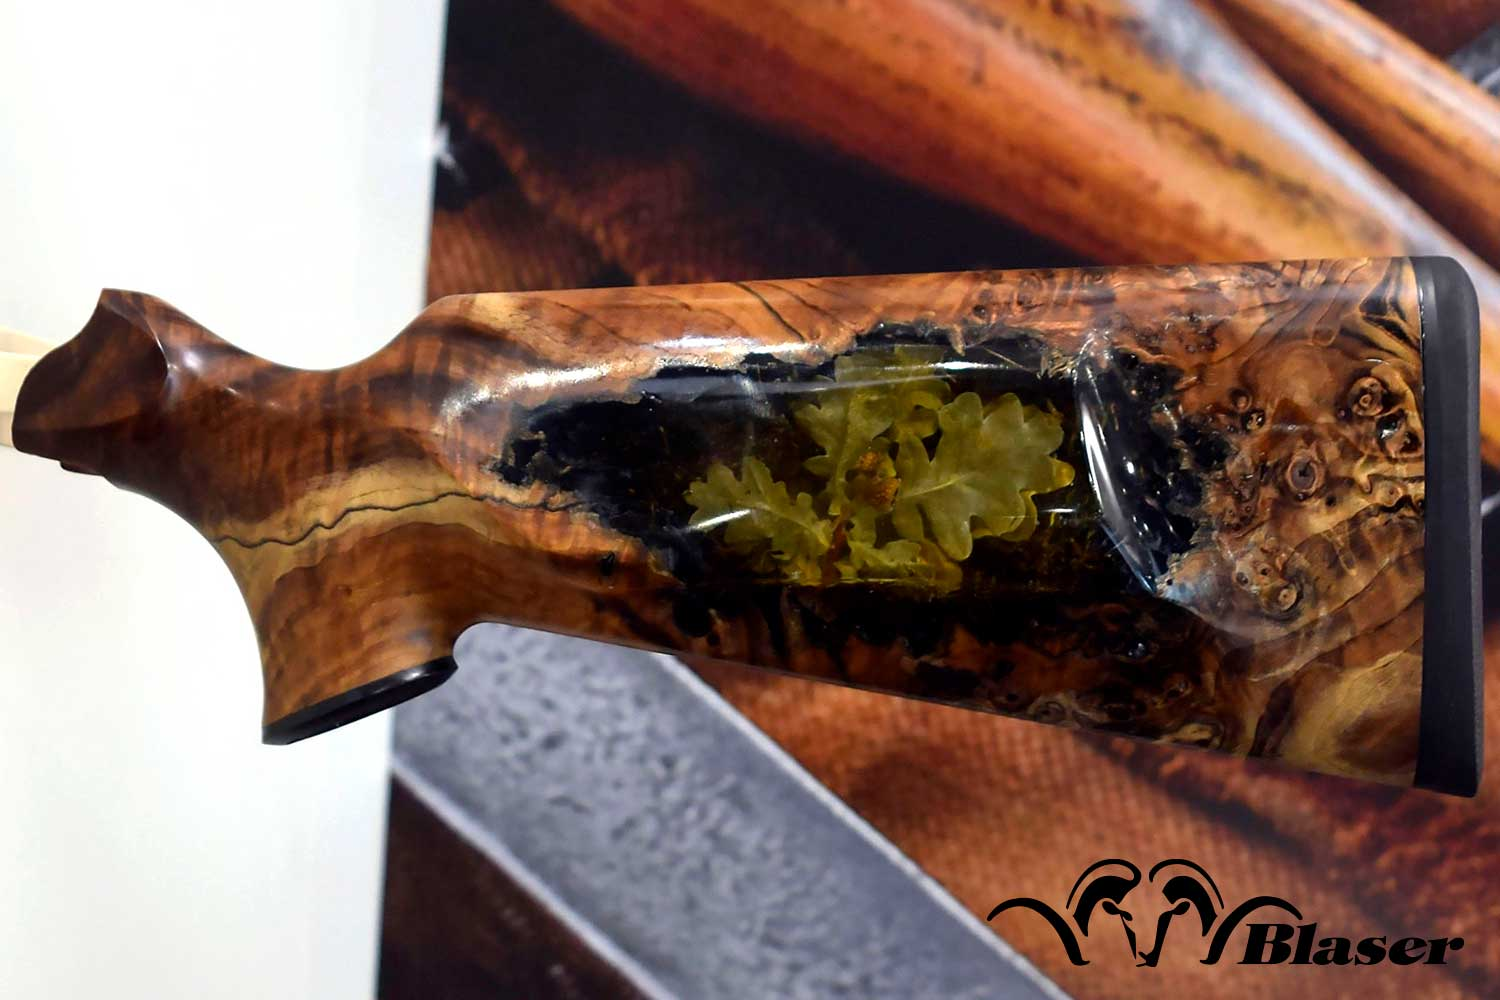 R8 Gunstock by Blaser Custom in stabilized poplar burl with oak leaves and acorns cast inside.